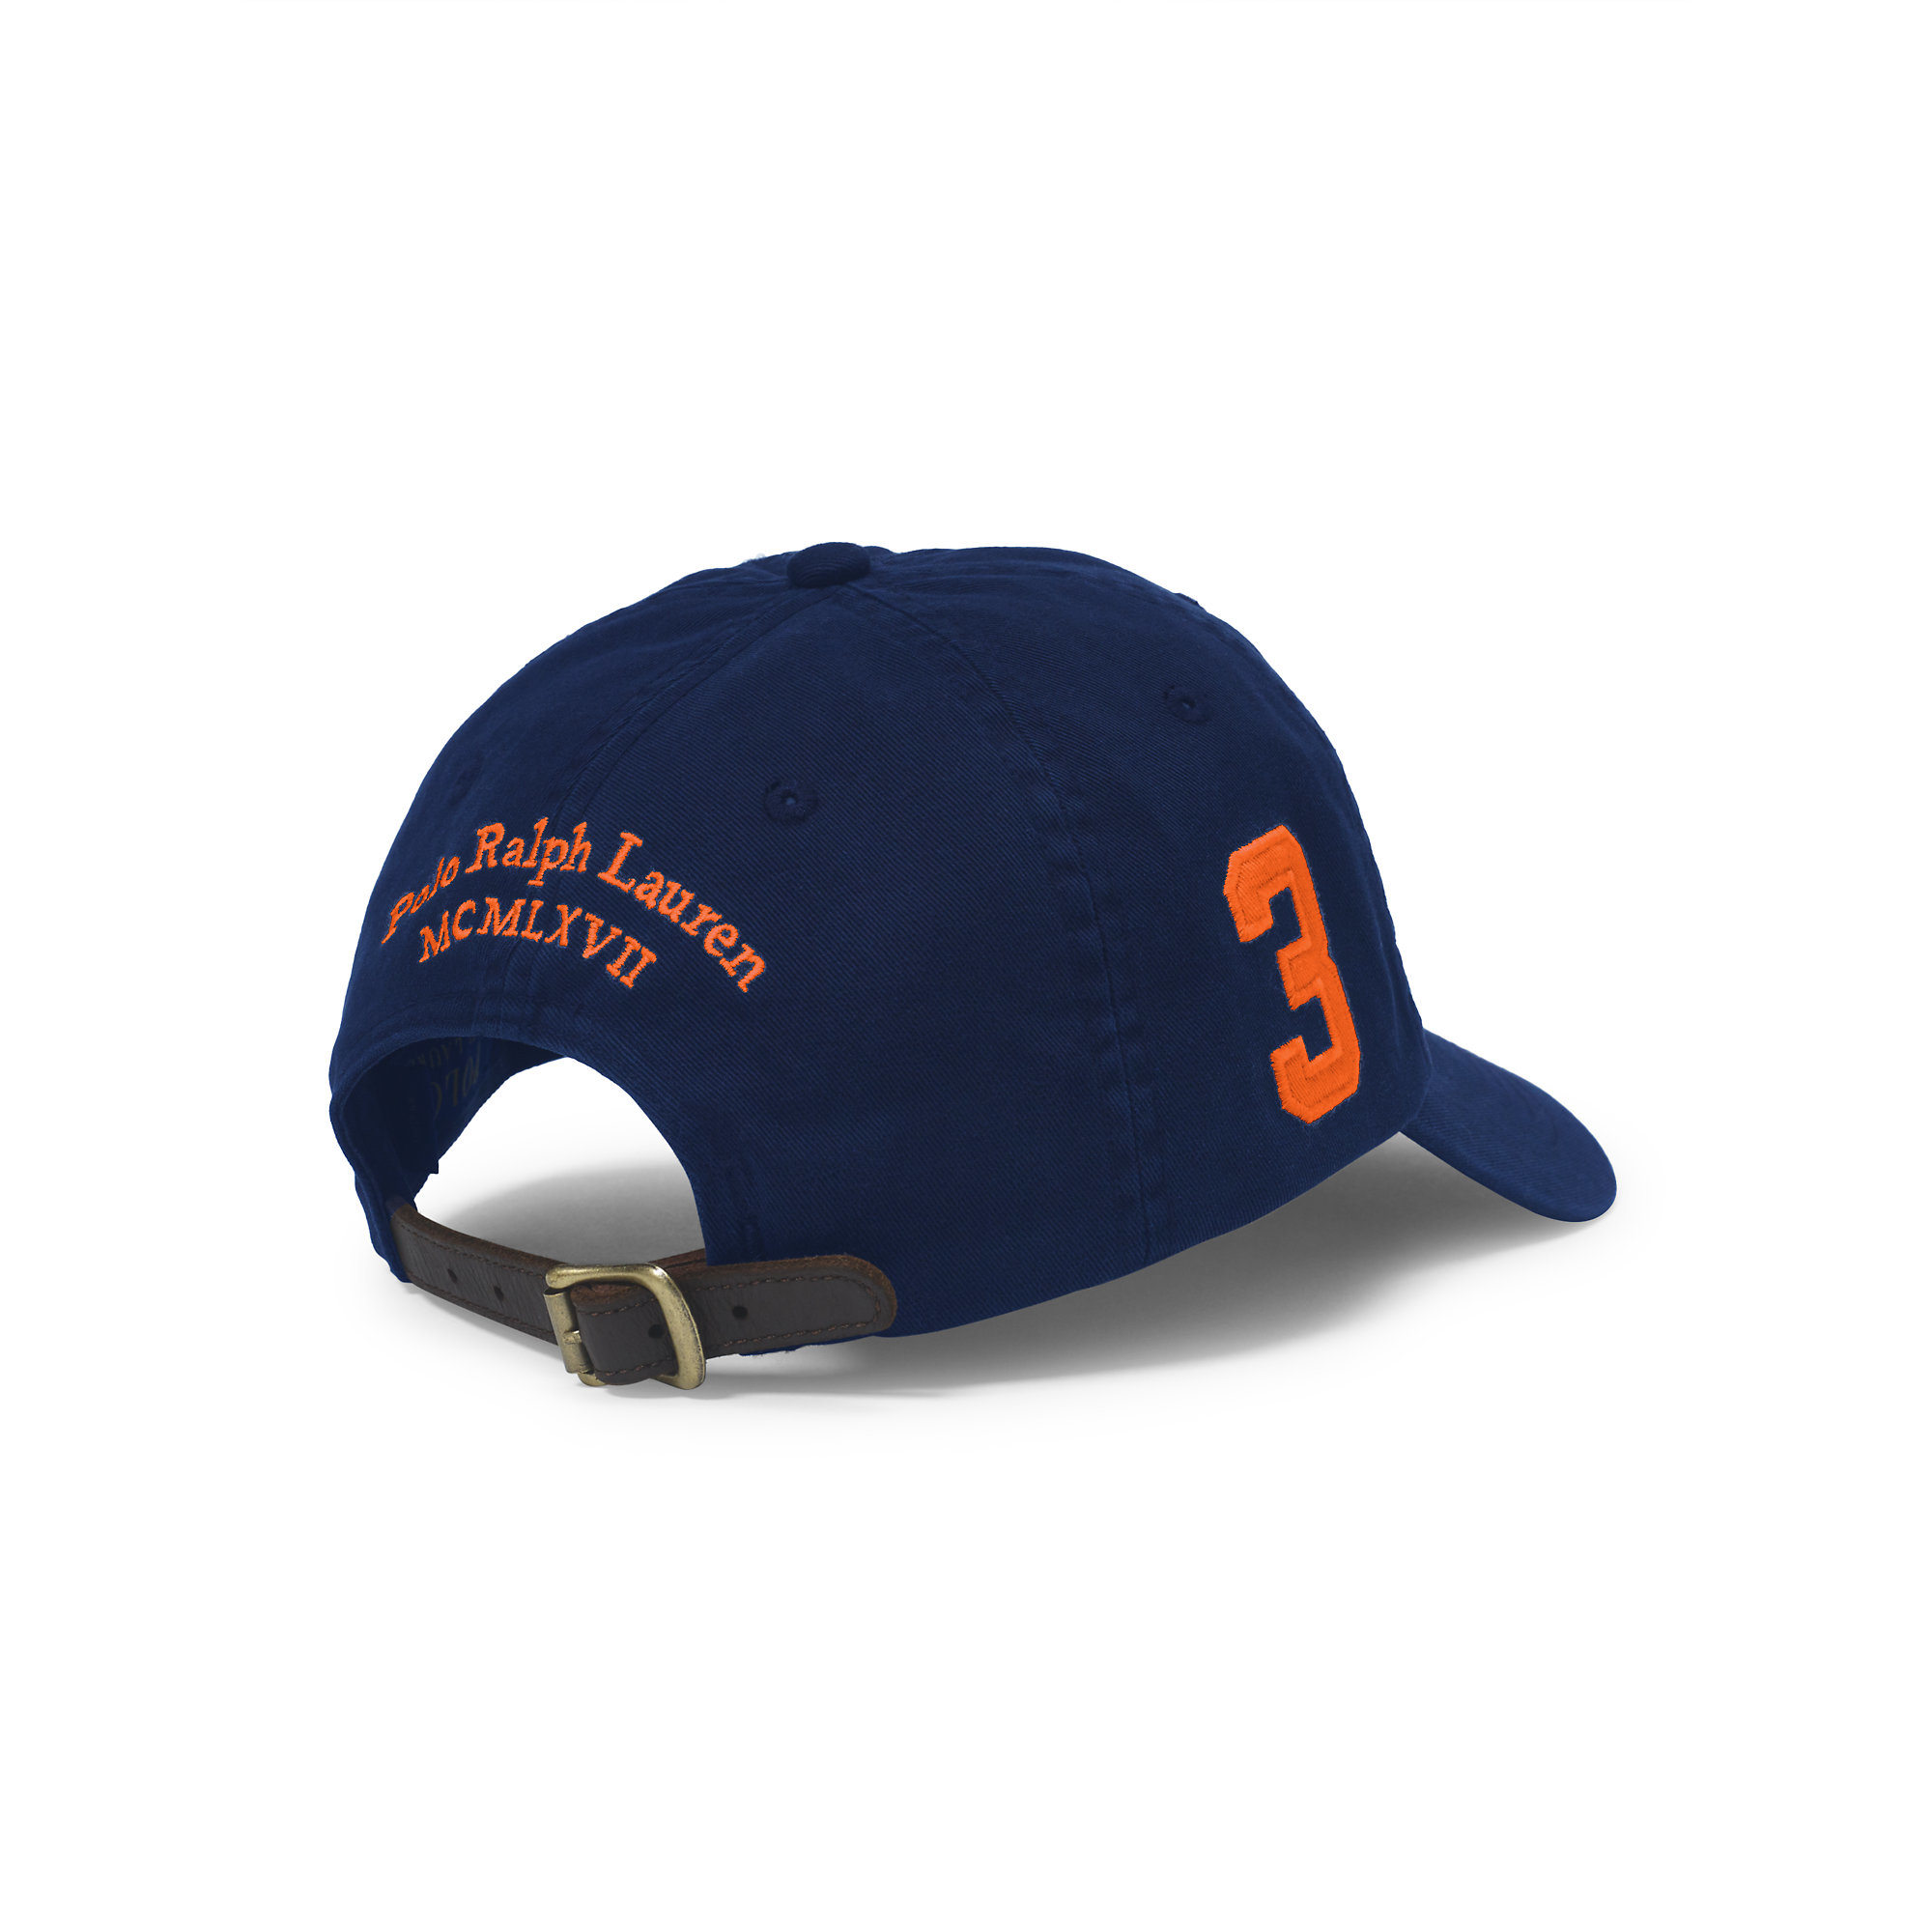 Lyst - Polo Ralph Lauren Big Pony Chino Baseball Cap in Blue for Men 0a91c5a7465d